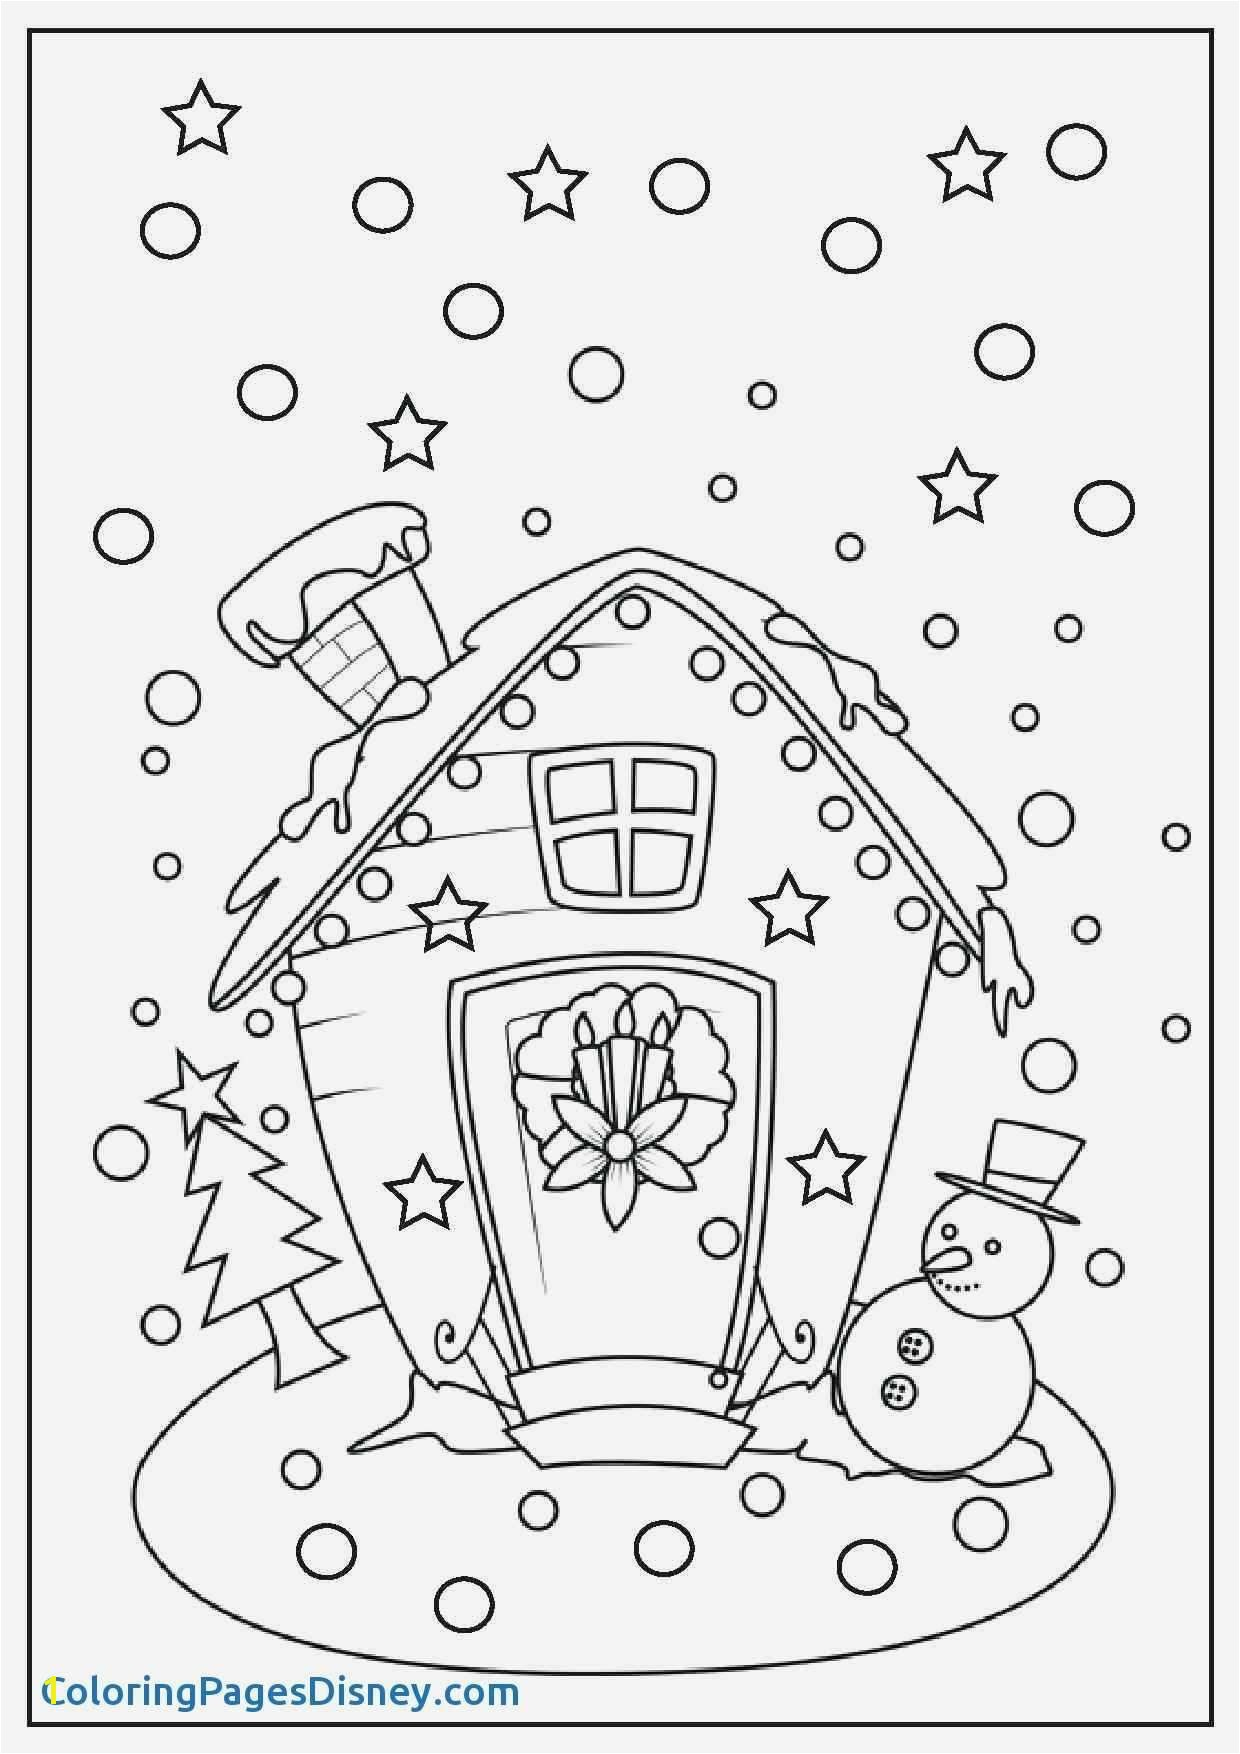 Christmas Printable Coloring Pages Disney 41 Disney Princess Christmas Printable Coloring Pages